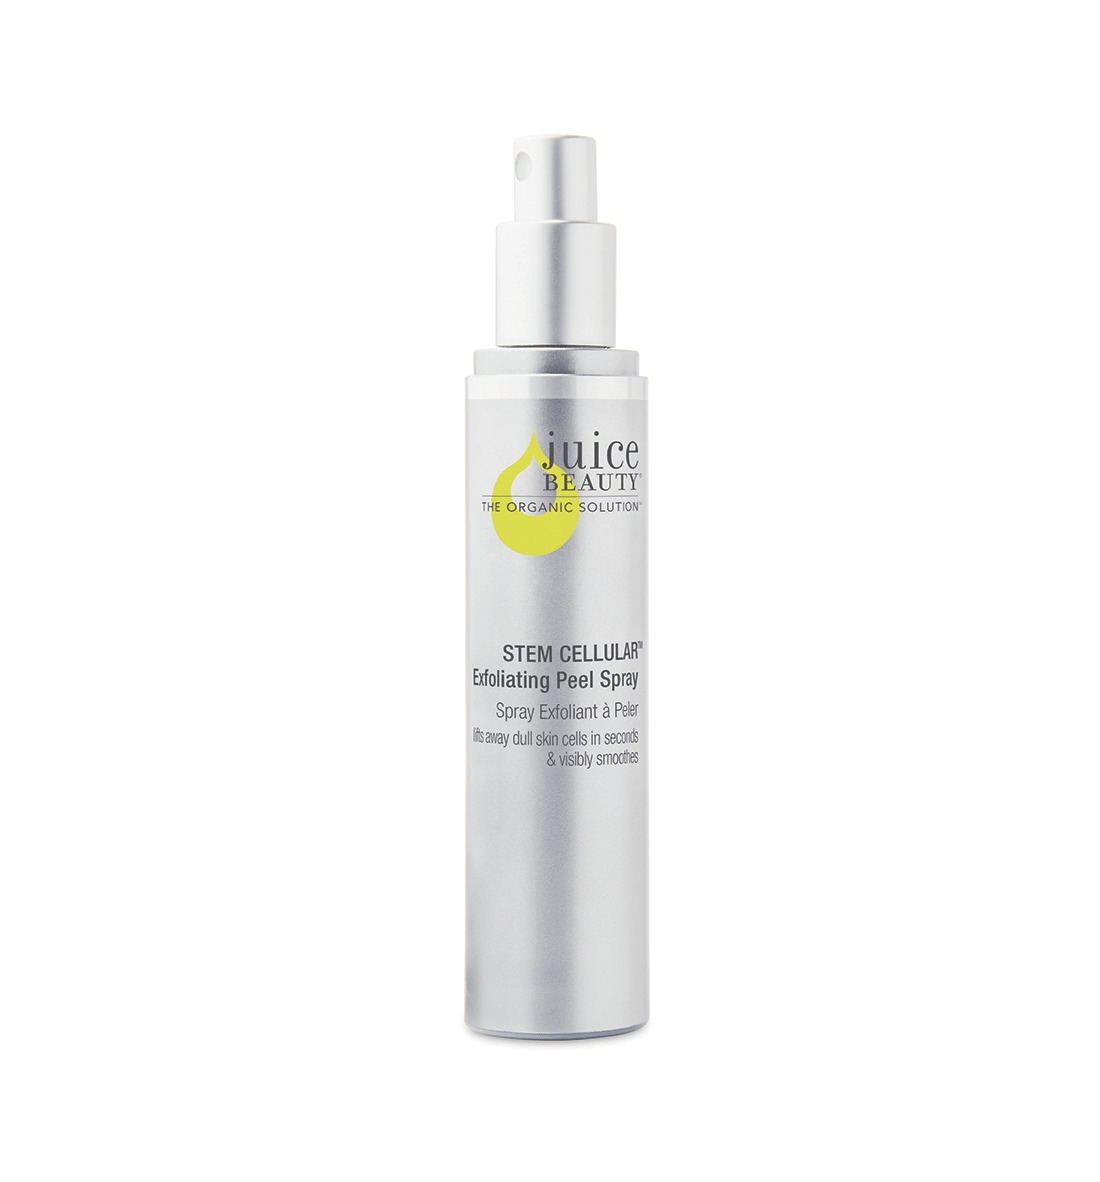 SPRAY EXFOLIANTE STEM CELLULAR